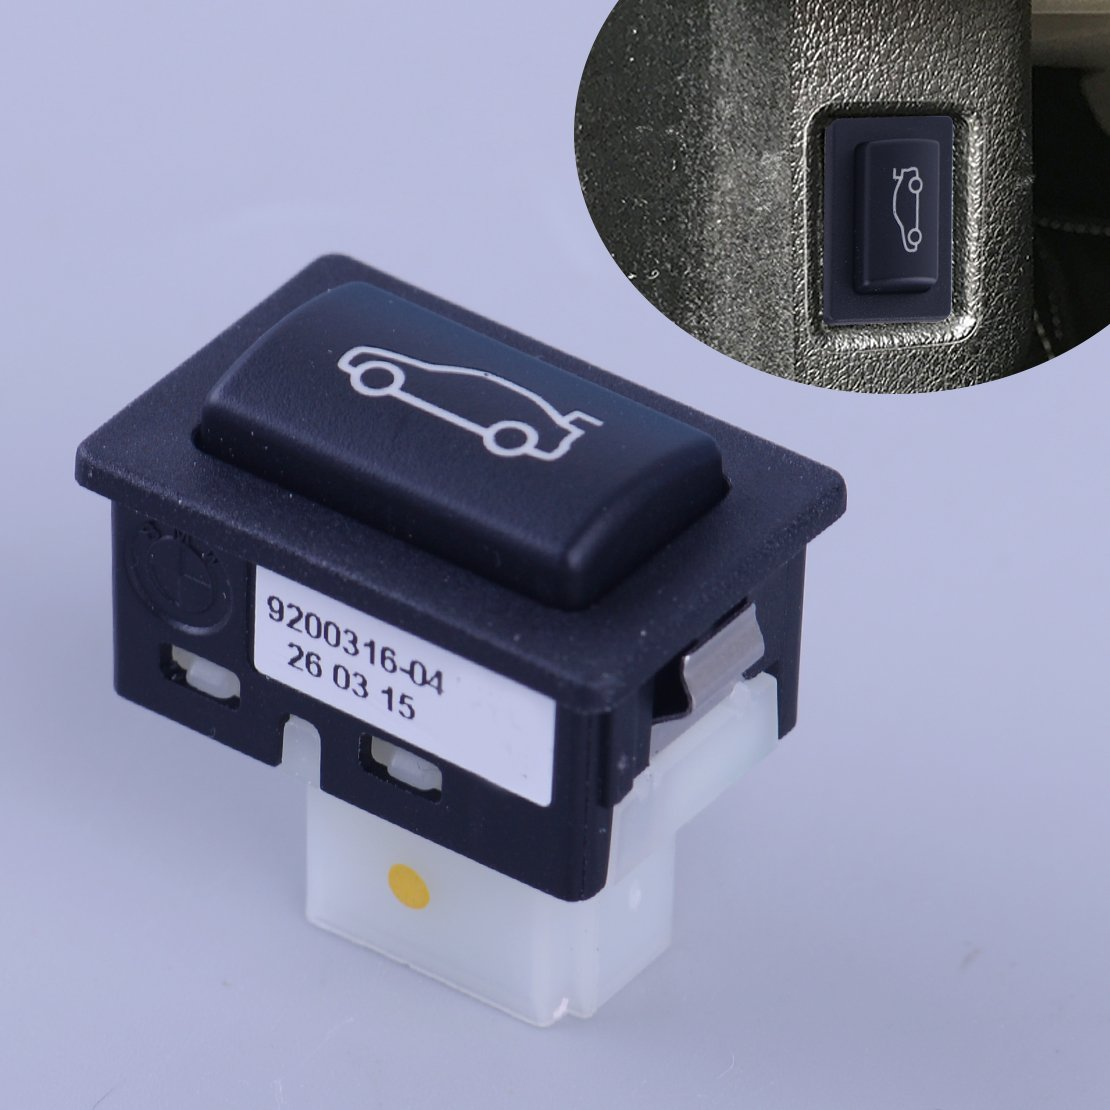 beler Trunk Unlock Switch Push Button Fit For BMW F10 F11 F20 F30 F35 F18 E84 61319200316